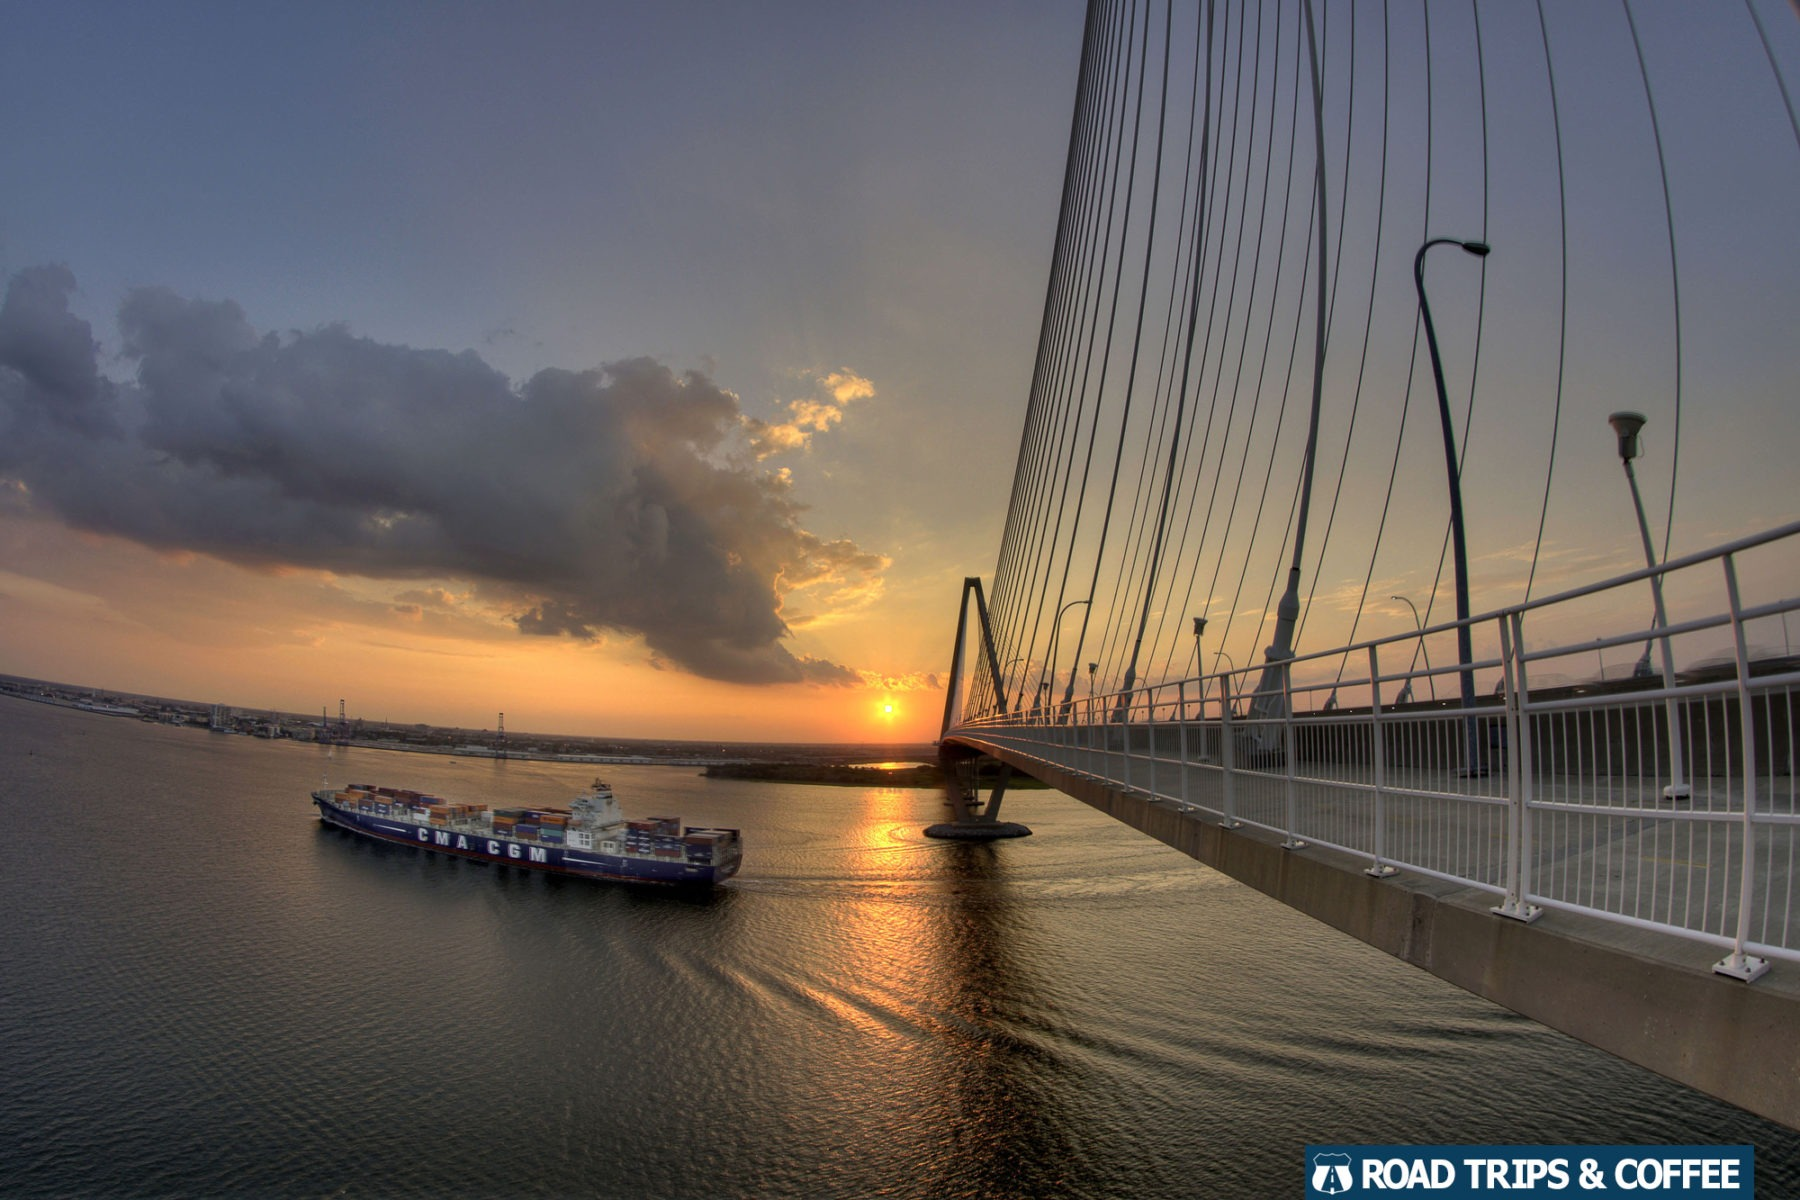 A large cargo ship cruises on the river during sunset beneath the long Arthur Ravenel Junior Bridge in Charleston, South Carolina